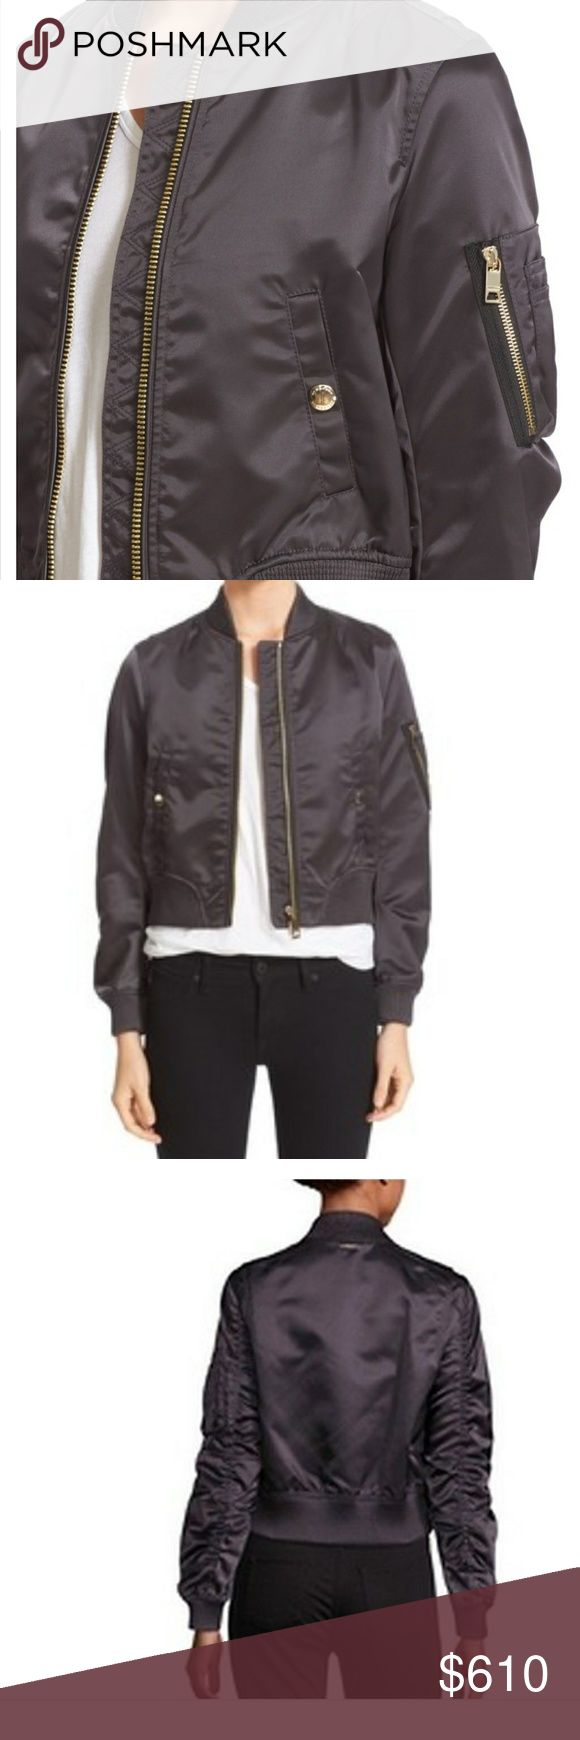 Burberry bomber jacket New without tags.  Never worn, perfect condition.  The Size is a US 8, a tiny bit big on me.   color is graphite and sold out.  Beautiful gold buttons on pockets and zipper. Burberry Jackets & Coats